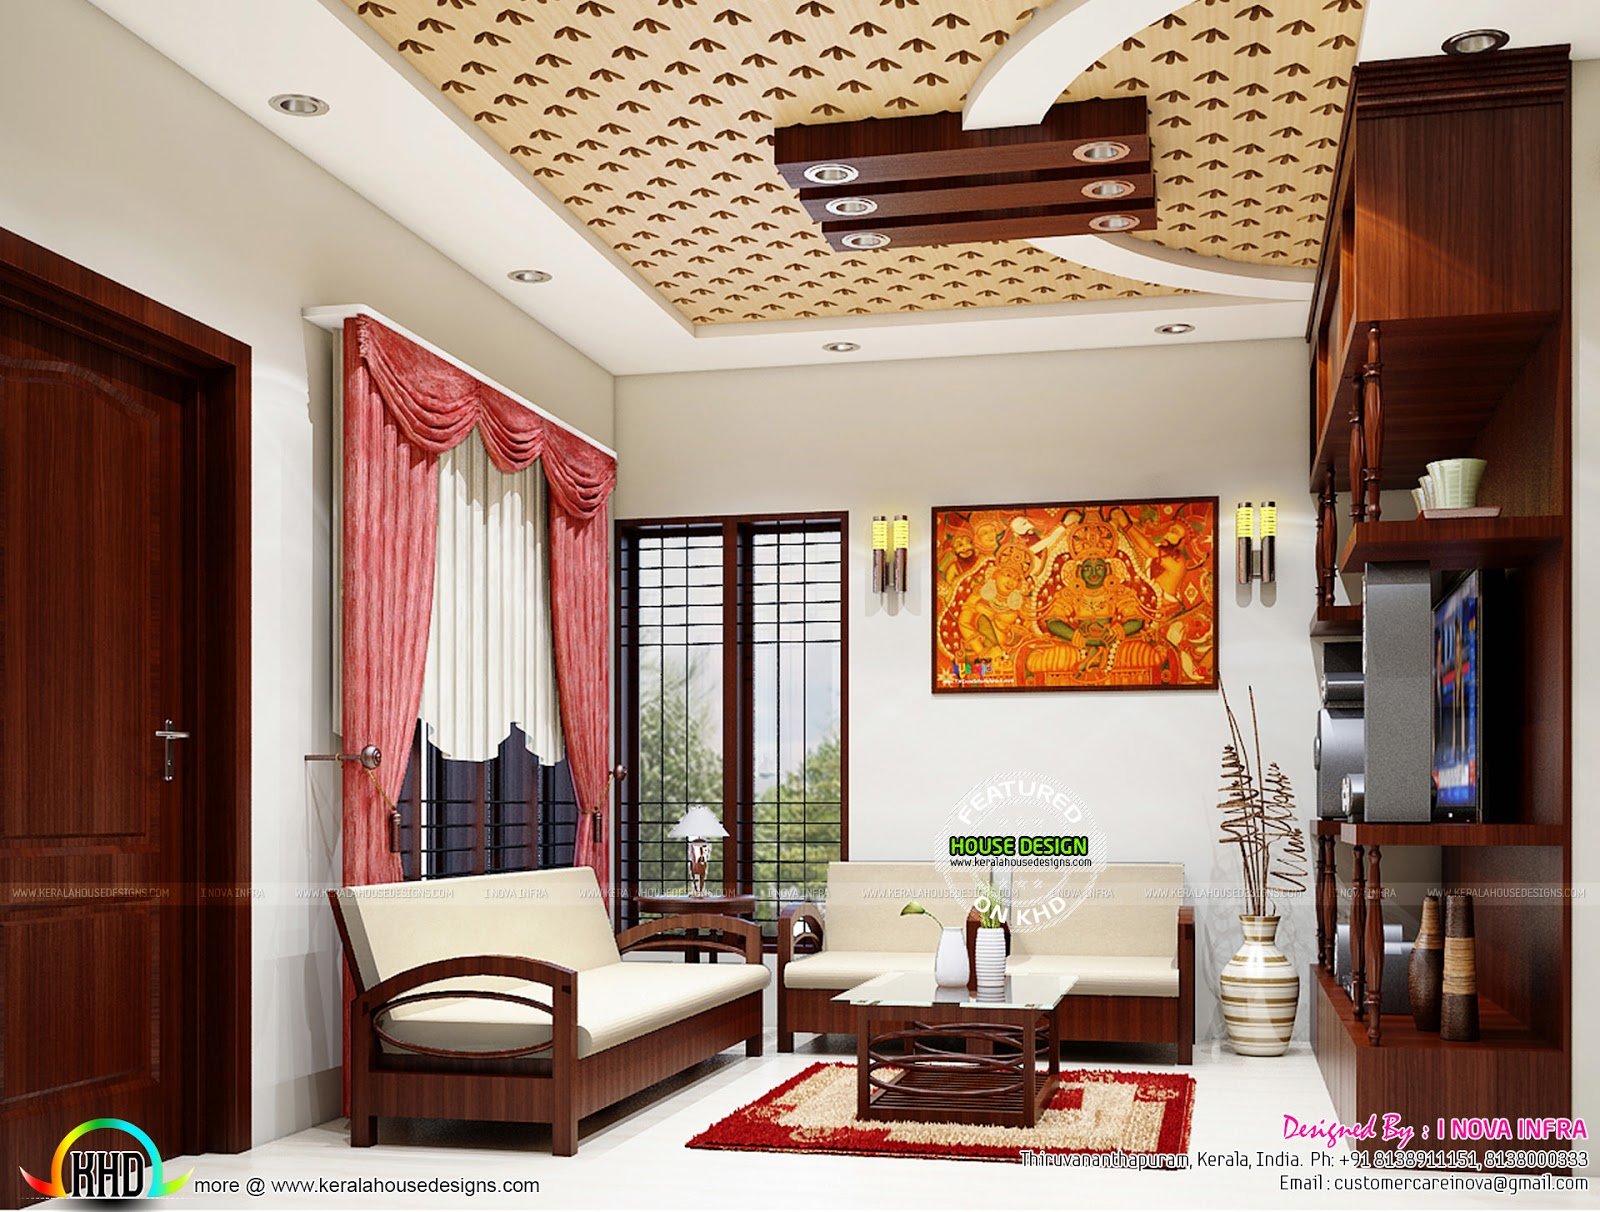 Kerala traditional interiors kerala home design and for Dining room ideas kerala